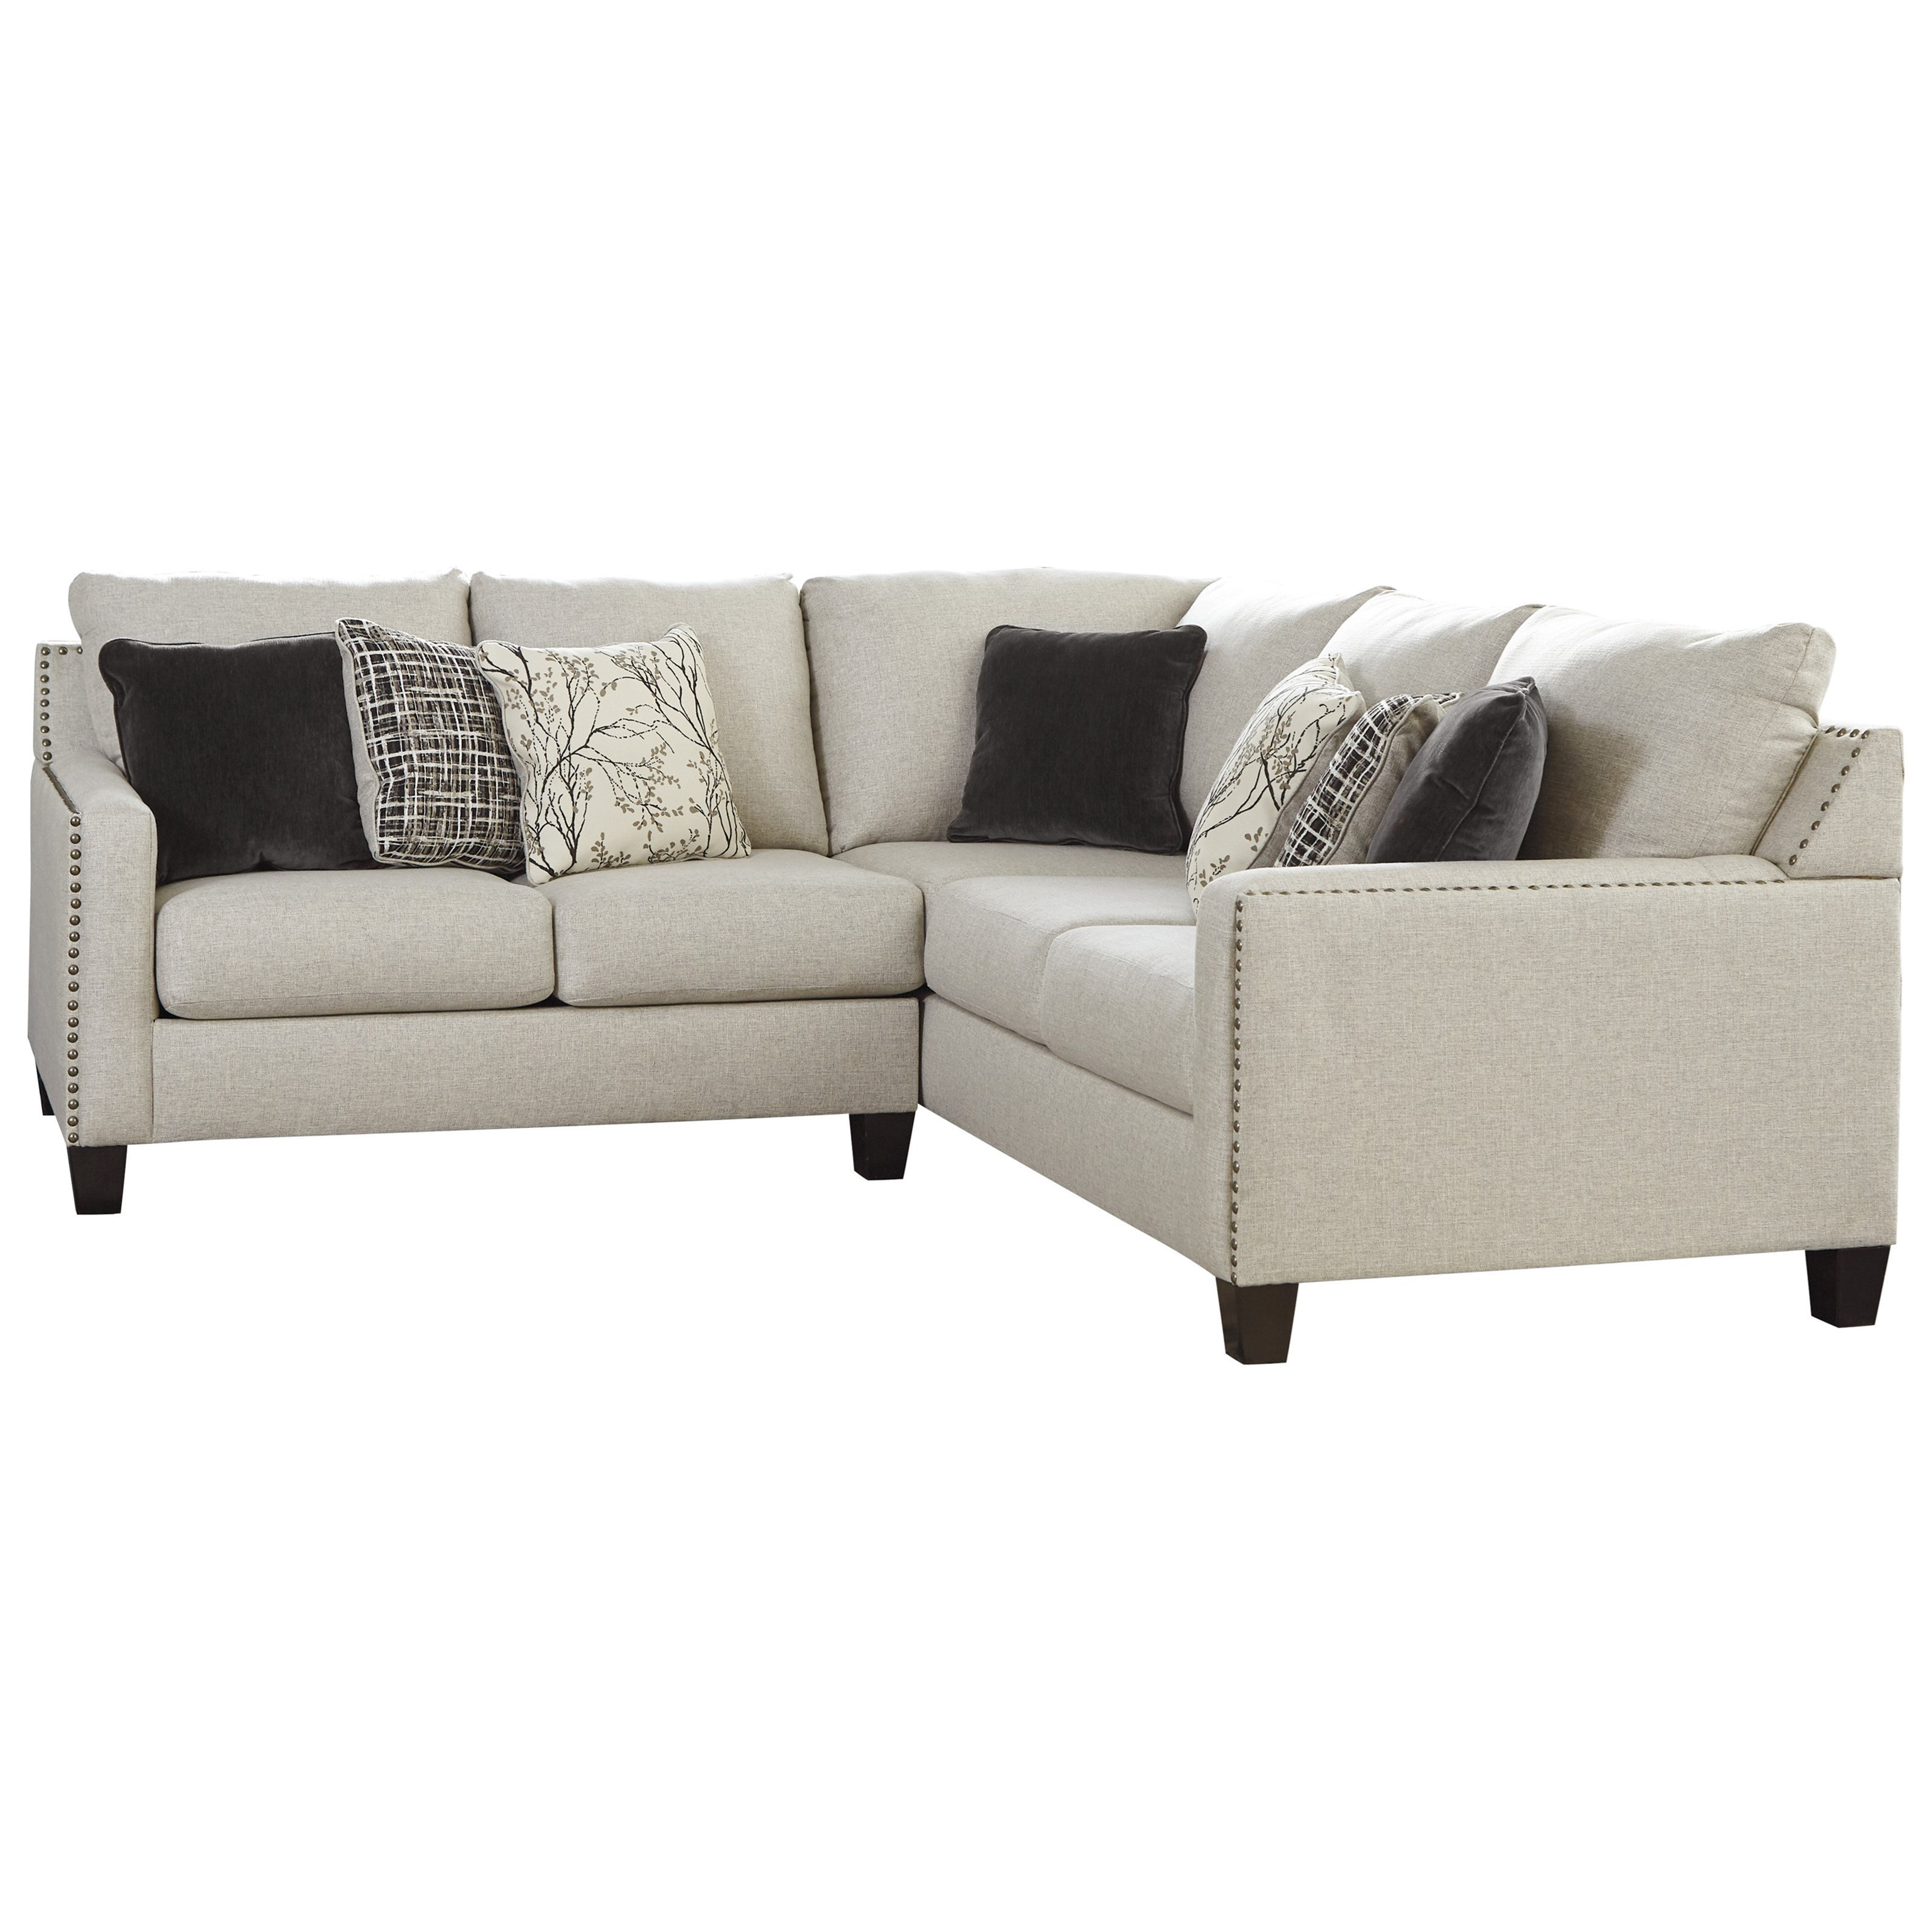 Signature Design By Ashley Hallenberg Two Piece Sectional